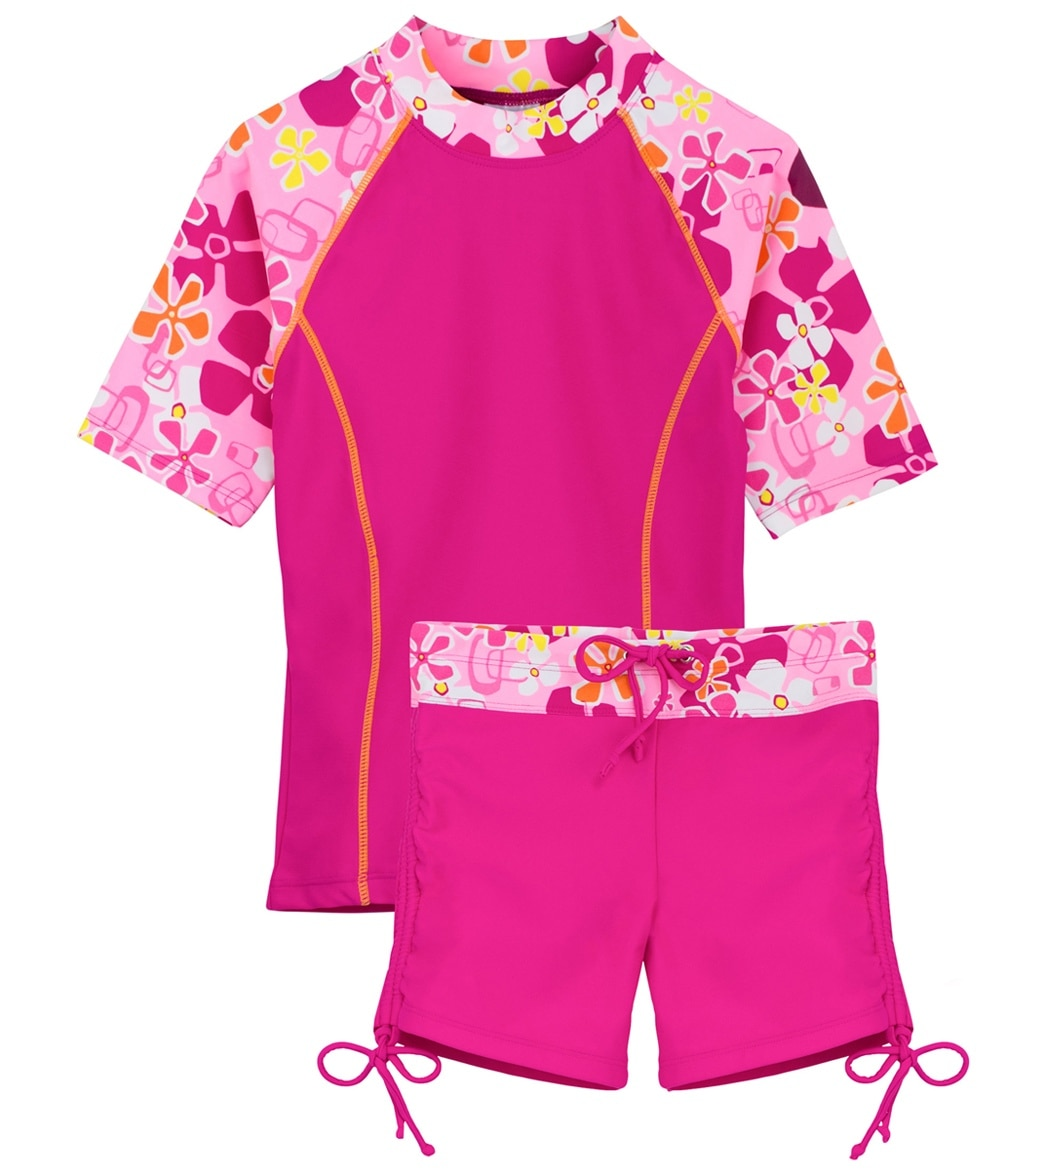 dc5ce8d753 Tuga Girls' Retro Swirl Surfer Girl Two Piece Rash Guard Set (Little Kid,  Big Kid) at SwimOutlet.com